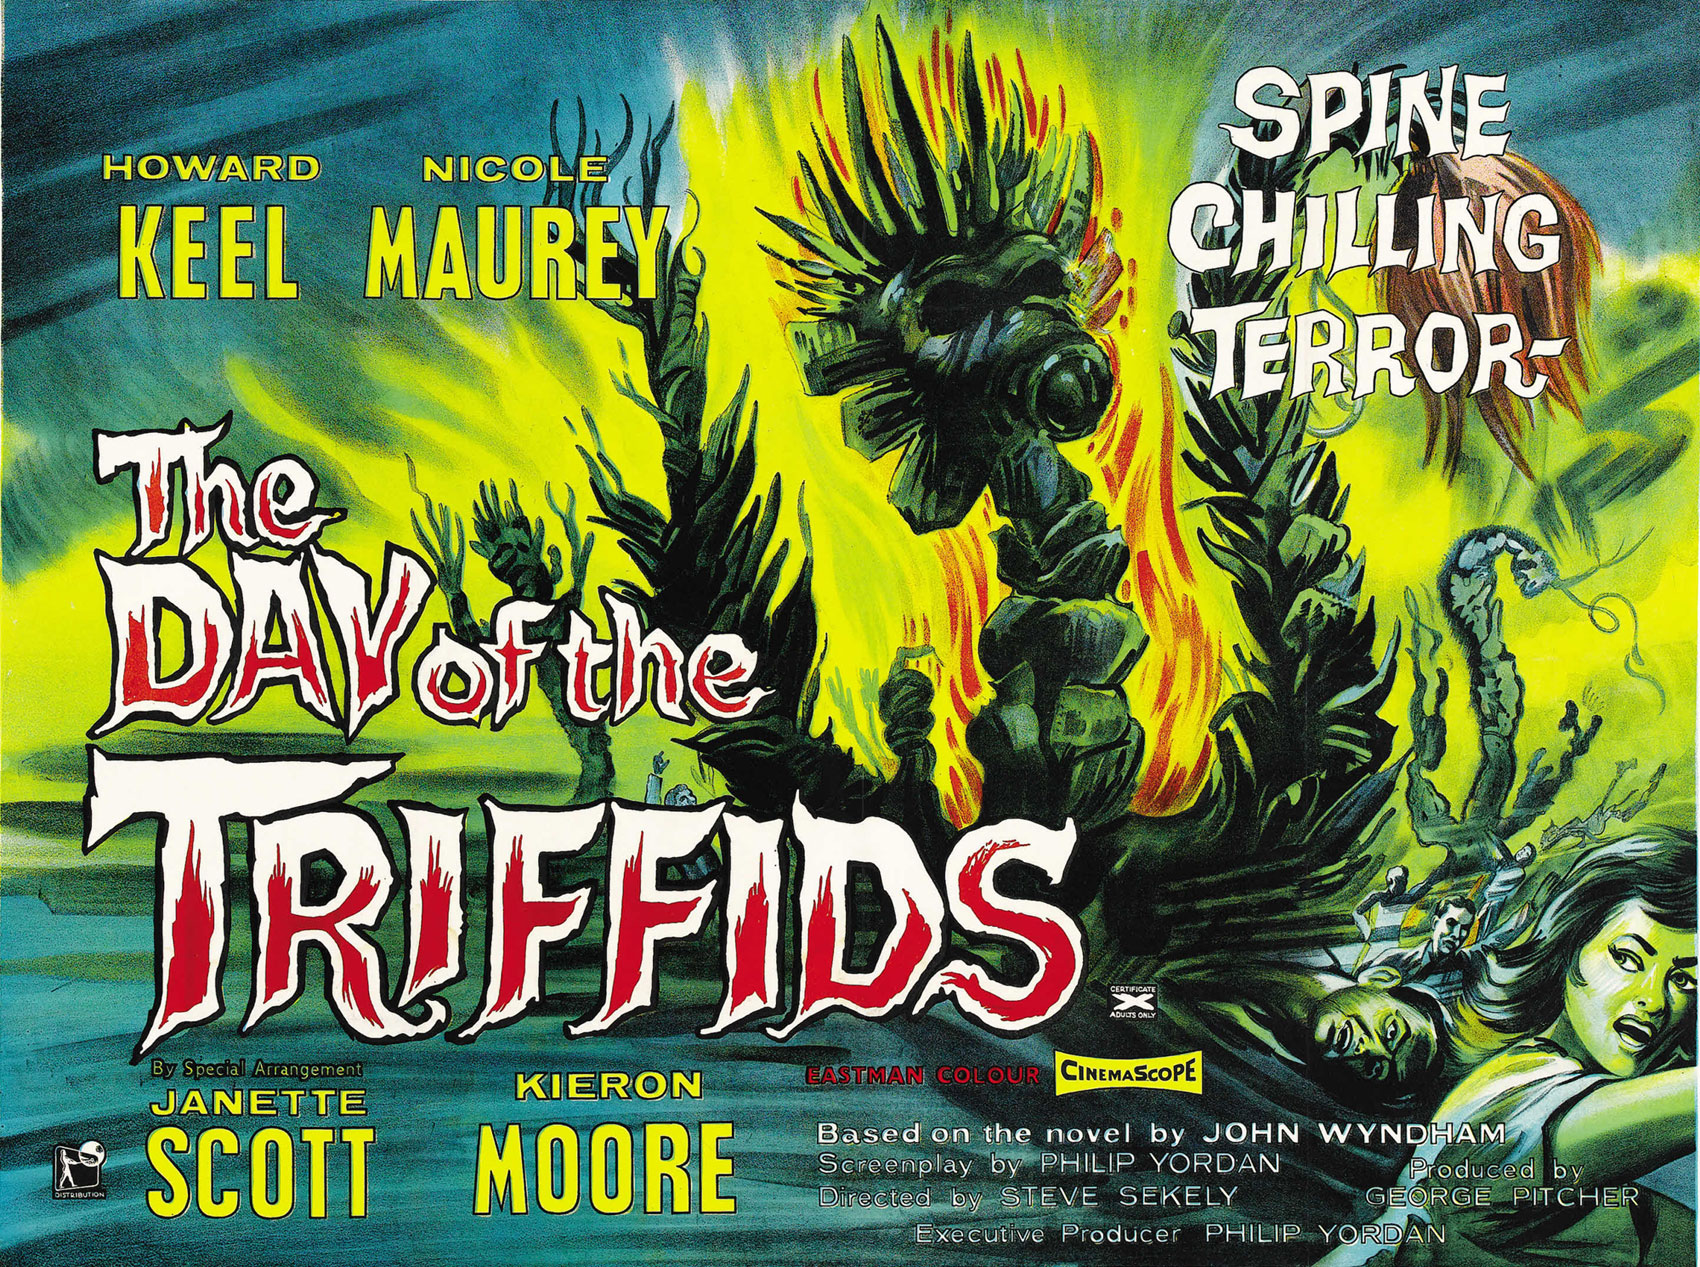 https://i2.wp.com/www.blastr.com/sites/blastr/files/day_of_triffids_poster_02.jpg